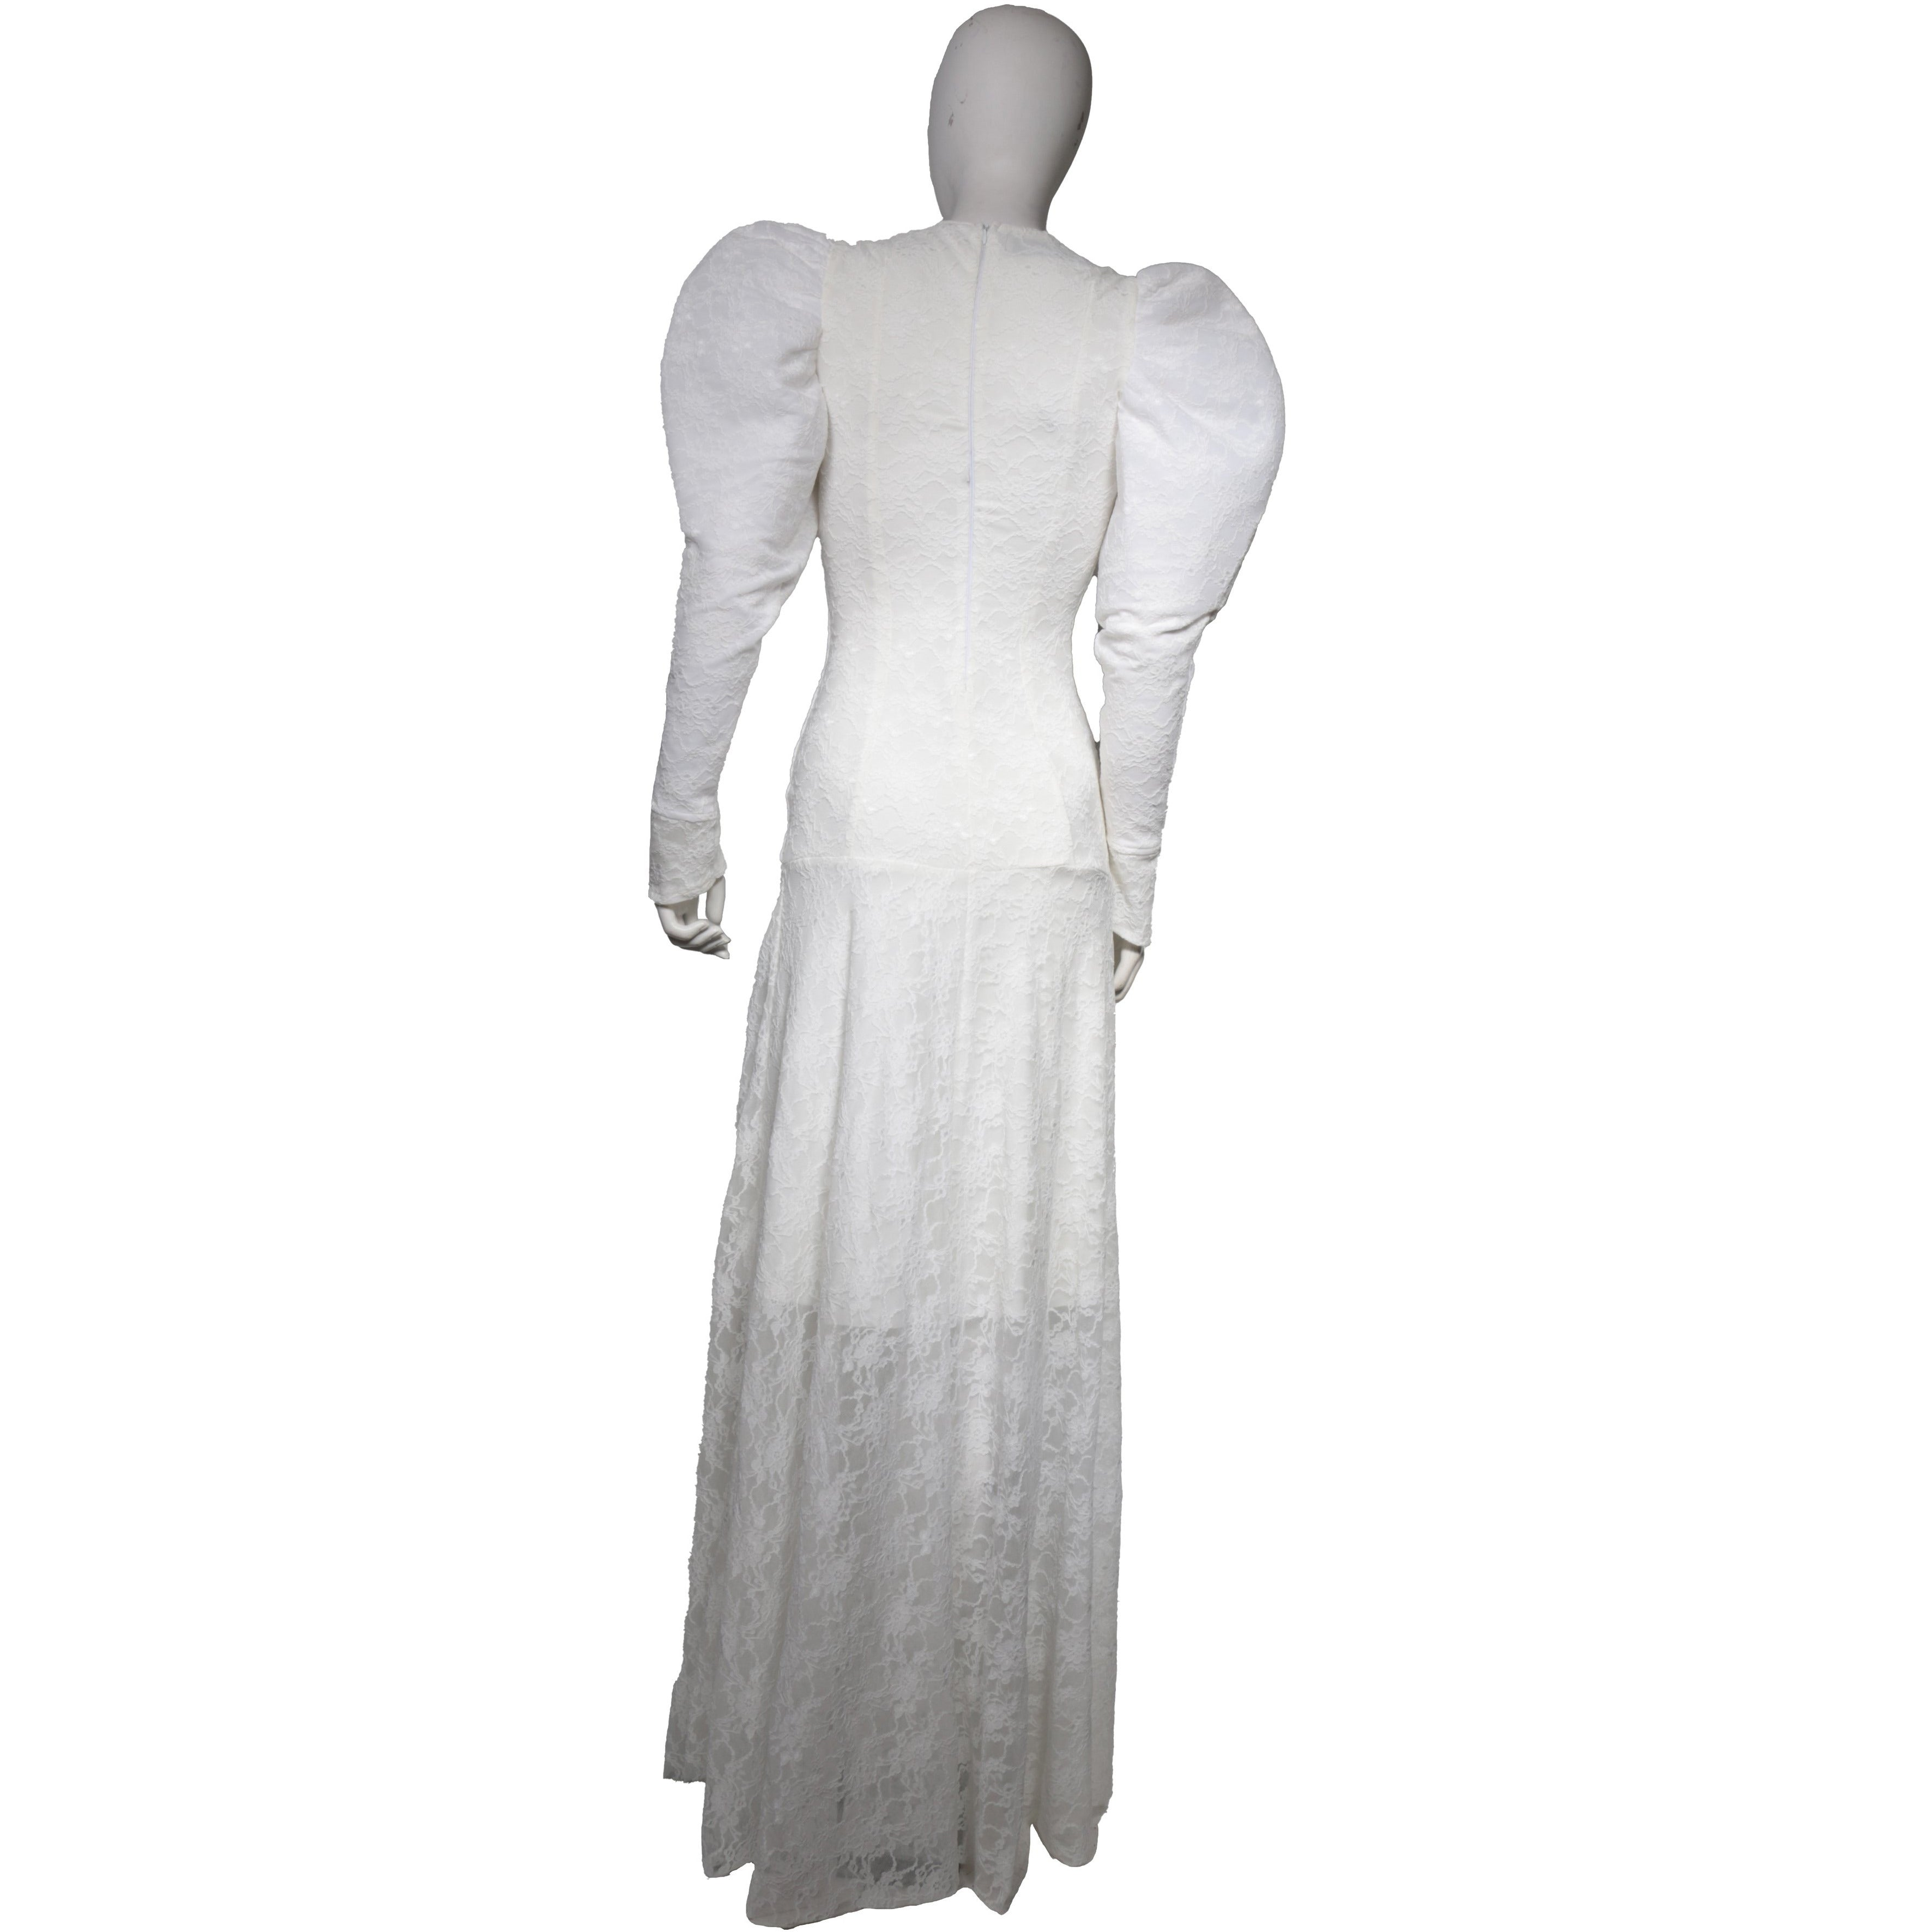 Futuristic angelic gown